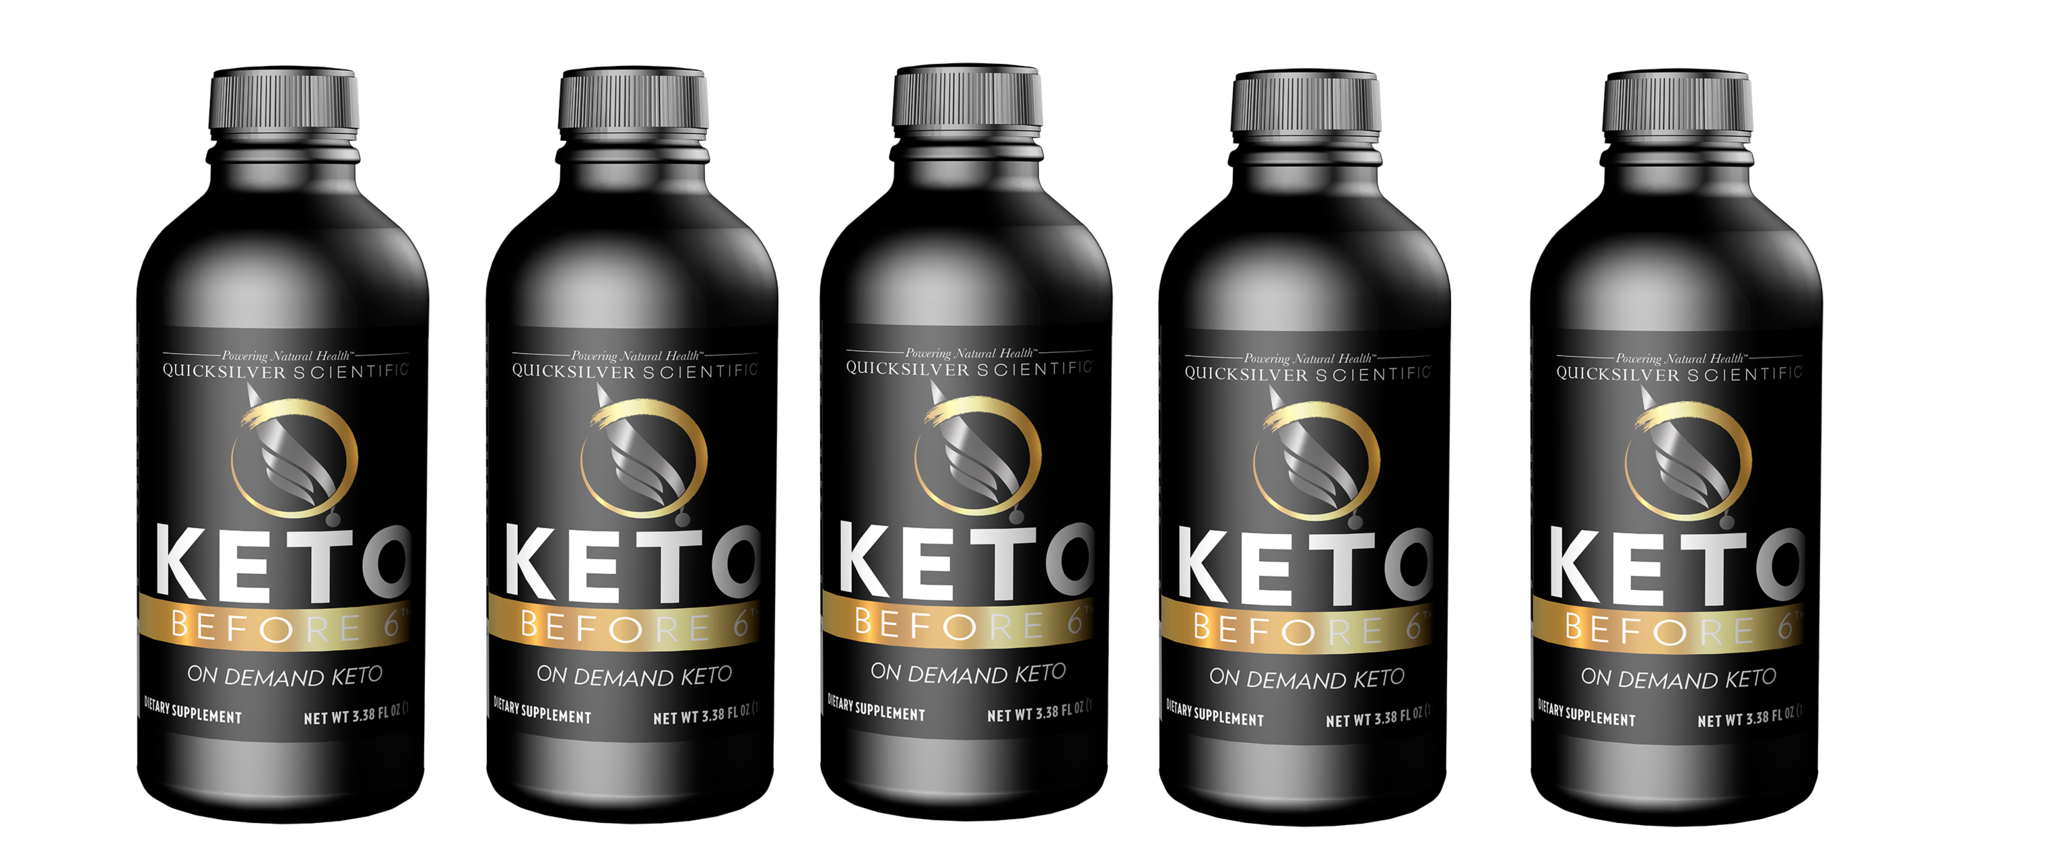 Quicksilver Scientific Keto Before 6™, 100ml, 5-pack